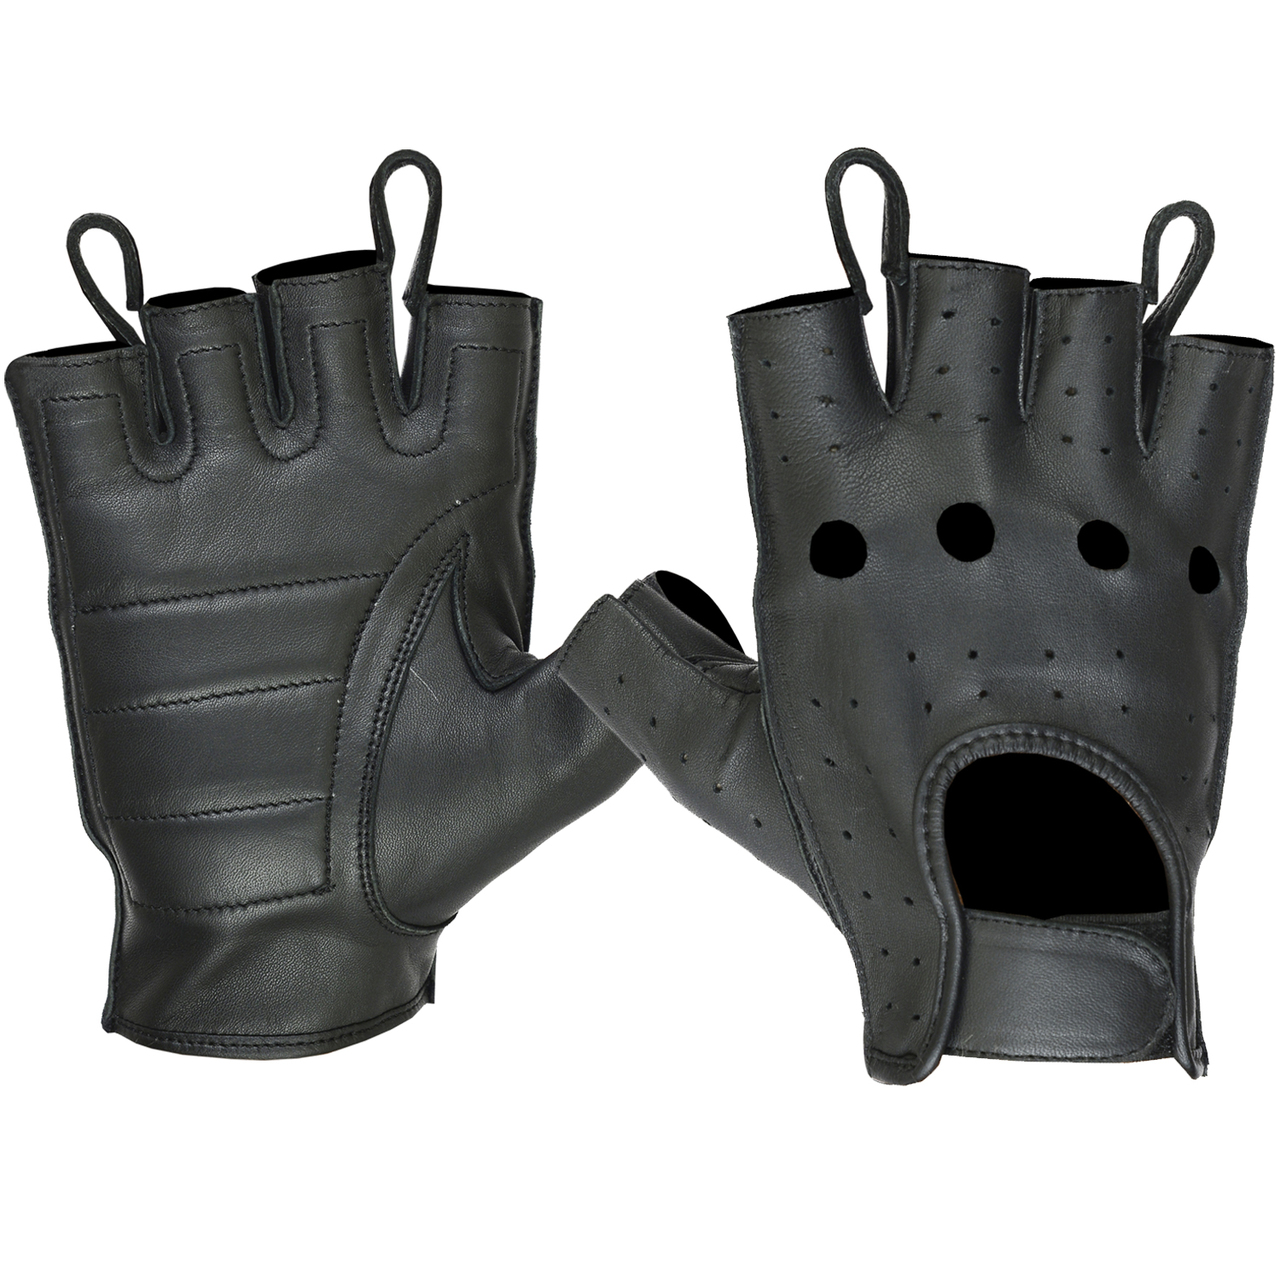 Ladies Unlined Water Resistant Technaline Leather, Quick Dry Color Insert Perforated Gloves (L.WPCIG)